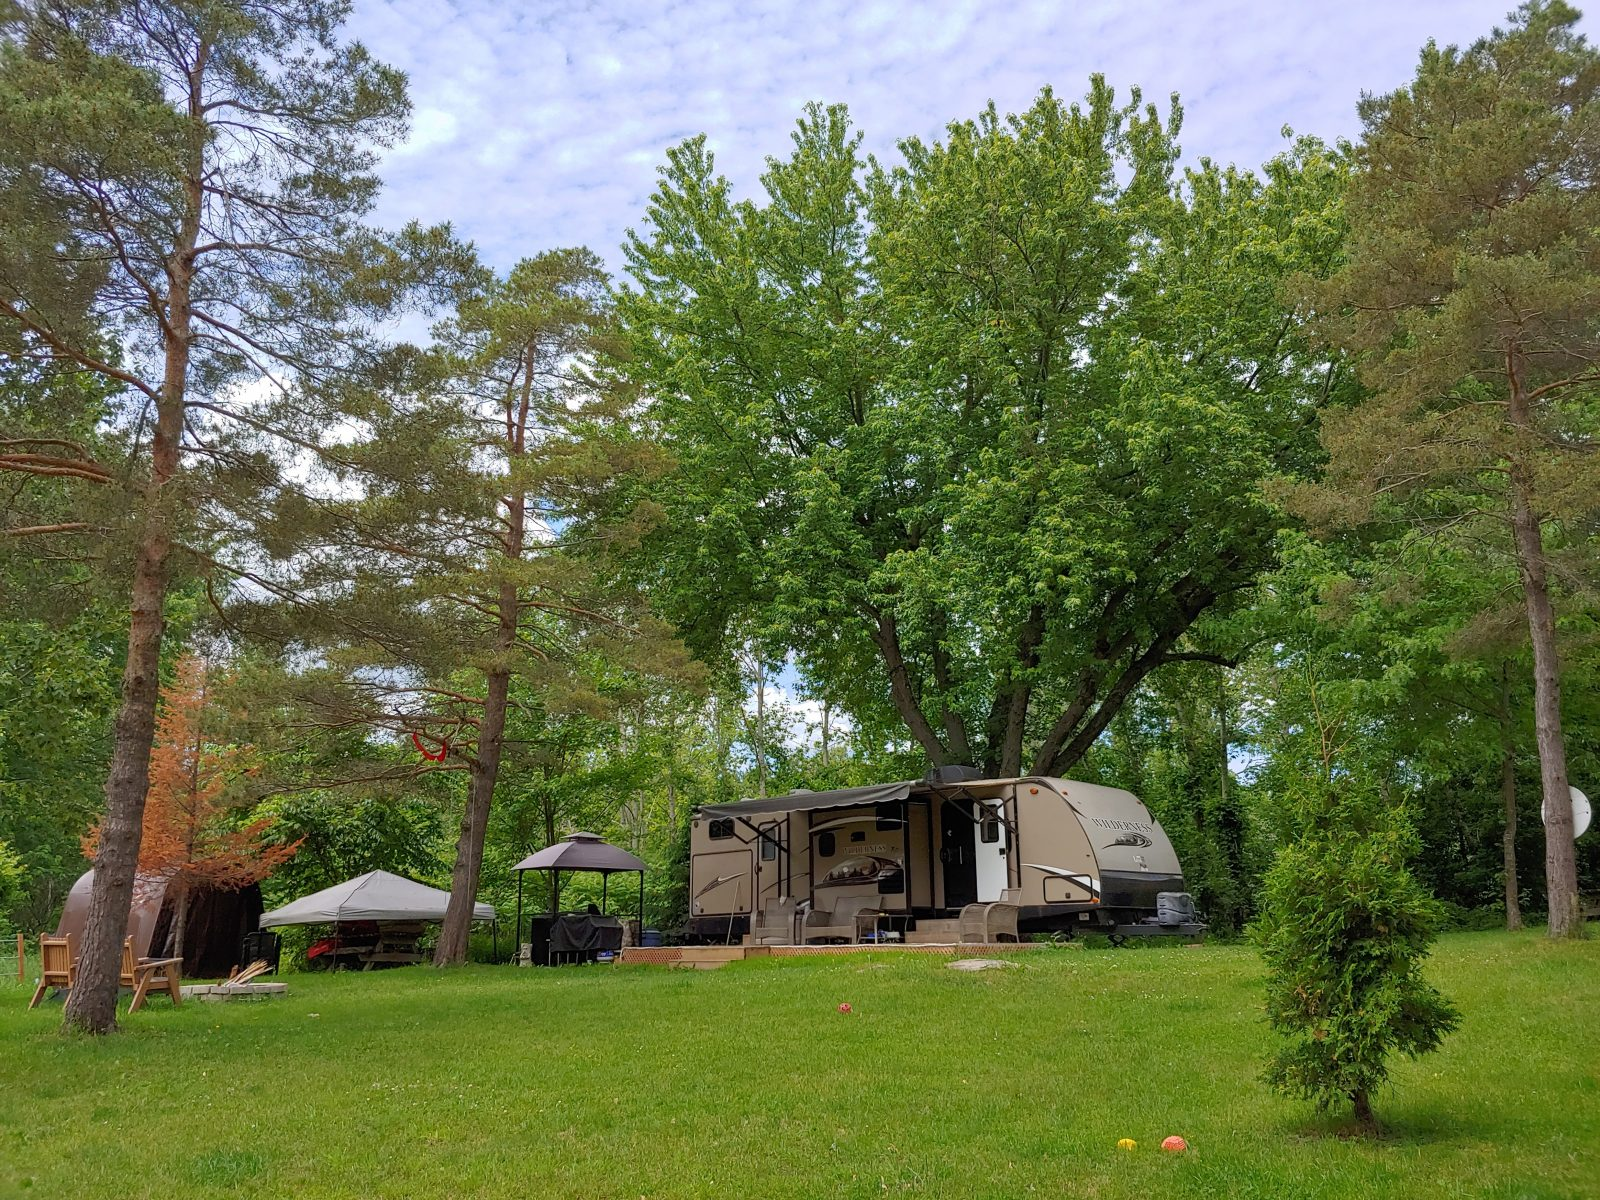 Online Reservations Open March 1 for RRCA's Charlottenburgh Park Campground